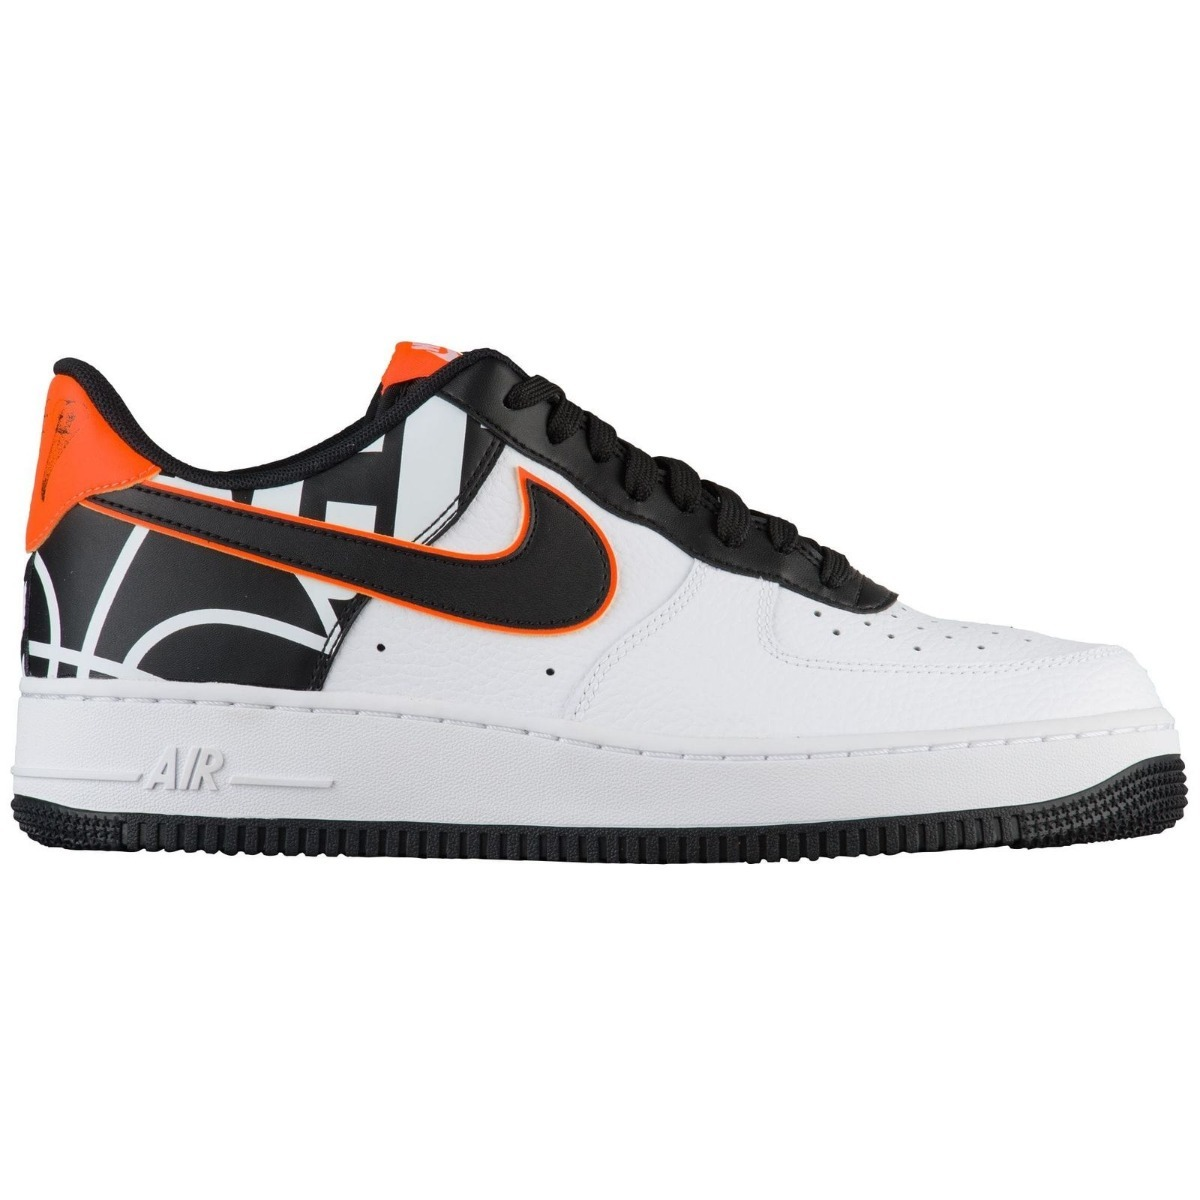 b5f3c82eb15 ... coupon for tenis nike air force 1 blanco negro. cargando zoom. 4a8ed  3696d